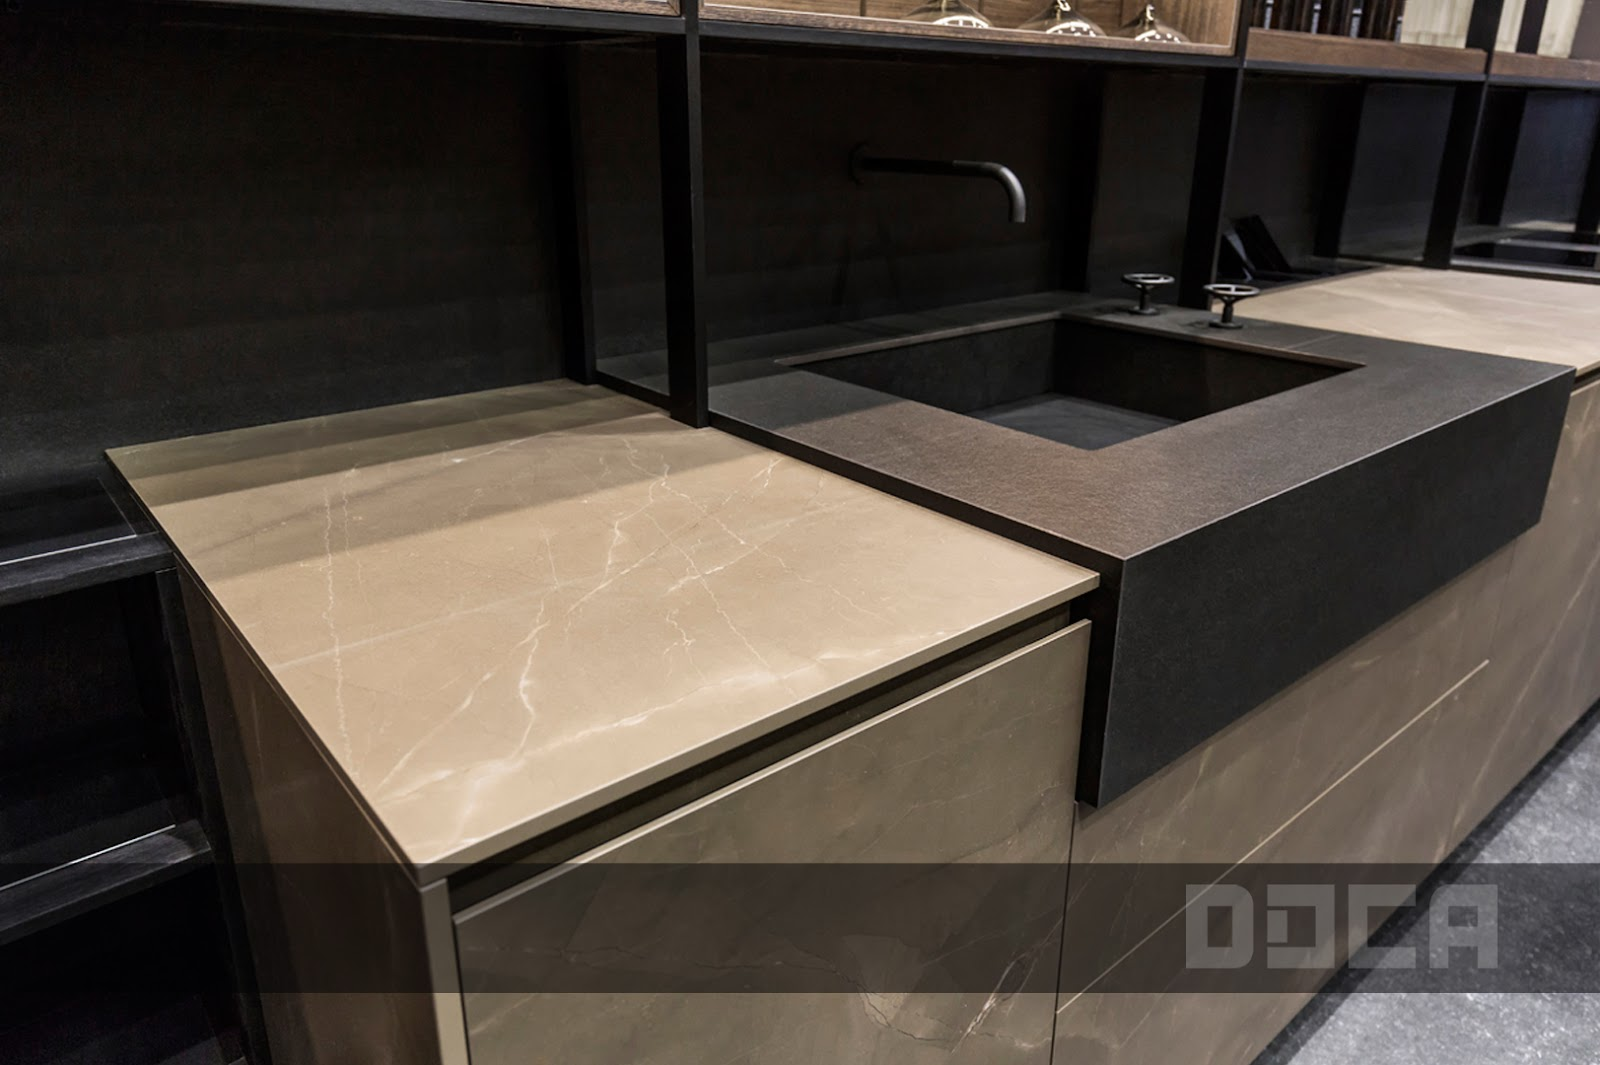 2154 EUROCUCINA PULPIS low 005.jpg